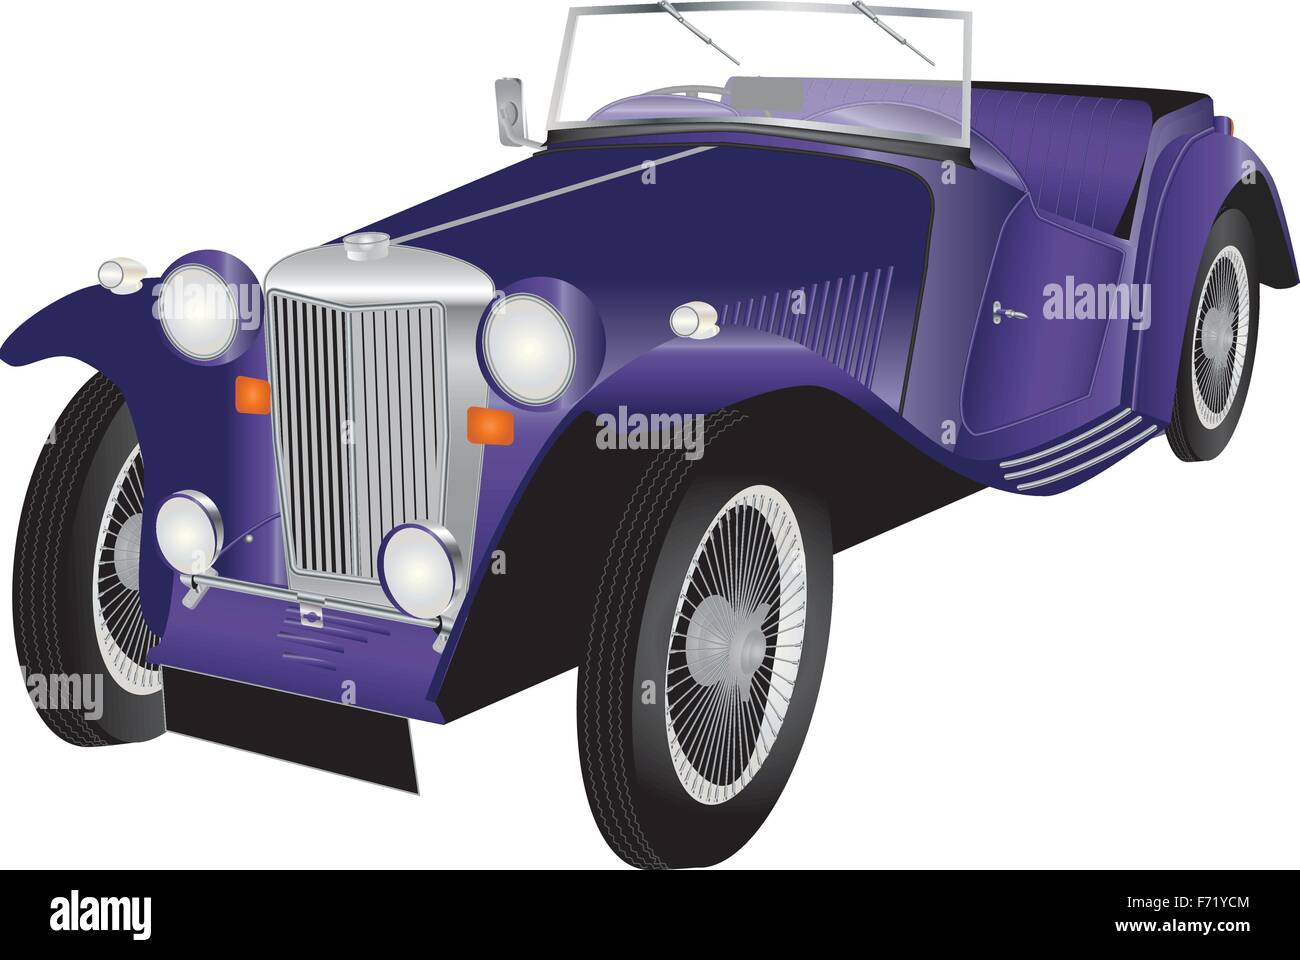 A detailed illustration of a Purple Vintage Sports Car with polished chrome fittings and wire spoked tires isolated - Stock Vector